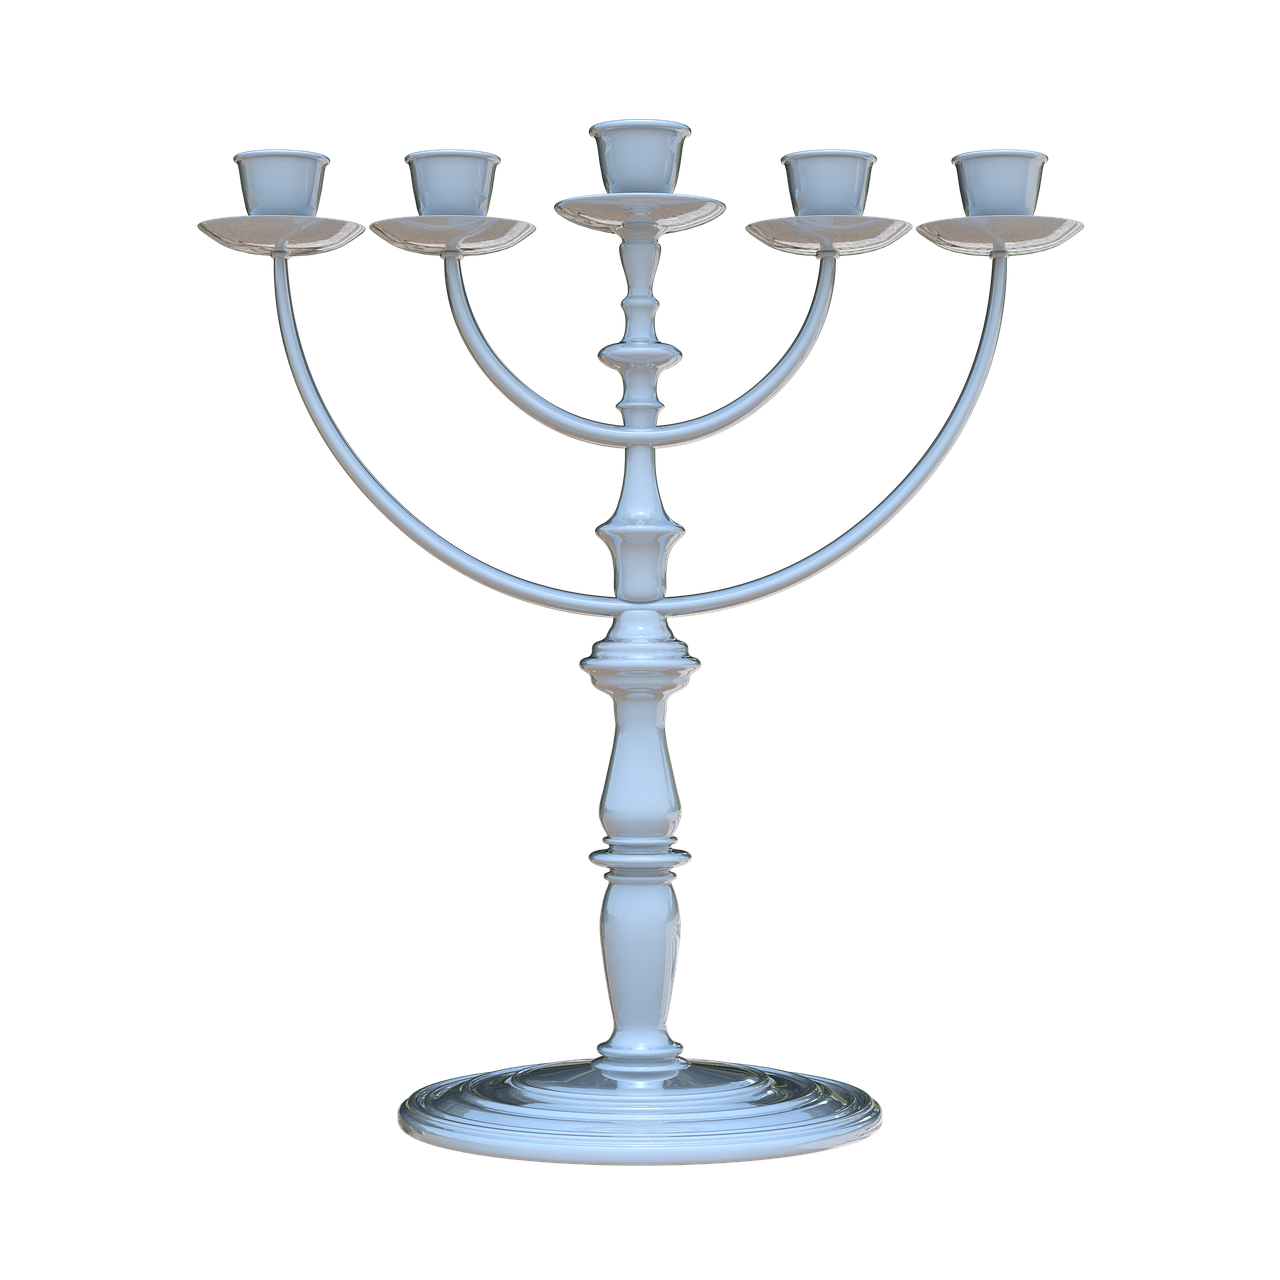 candlestick chandelier transparent background free photo